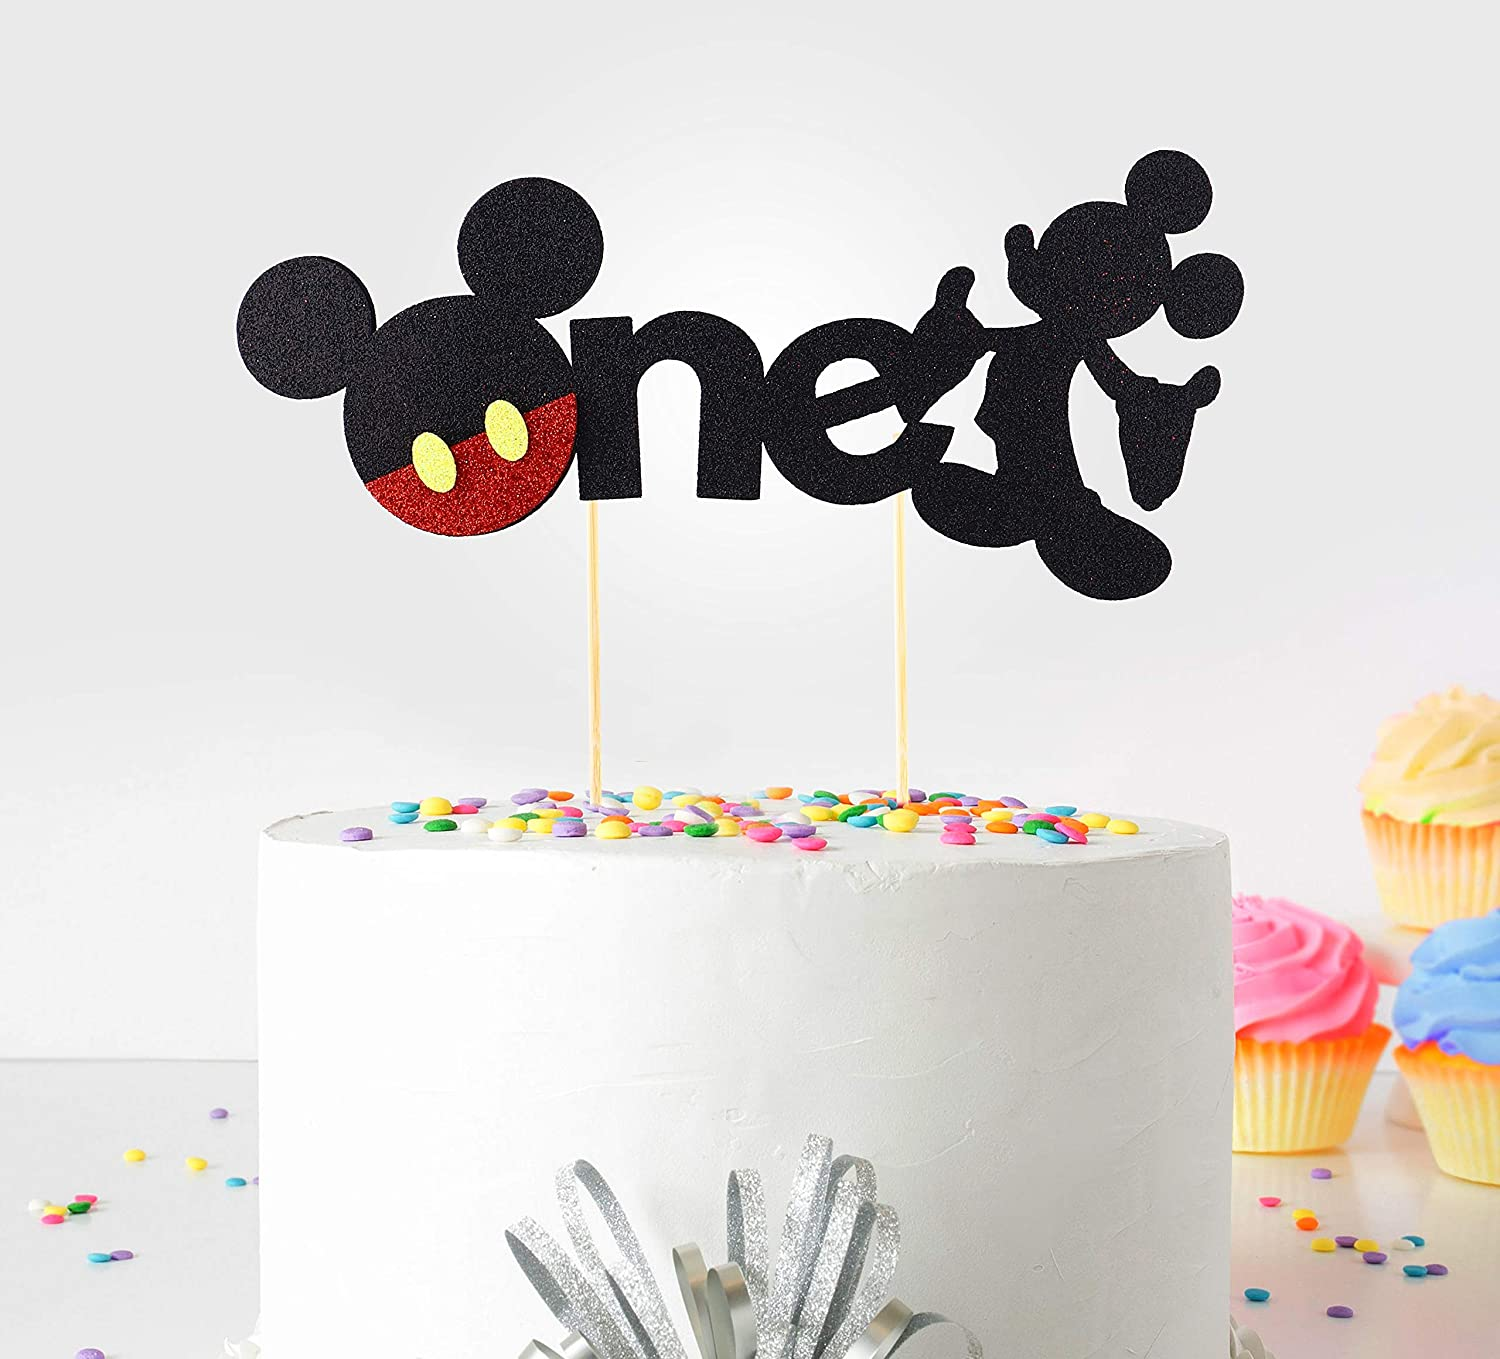 First Birthday Cake Topper Party Cake Decoration Supplies MALLMALL6 Onederful Mickey Mouse Inspired Cake Topper